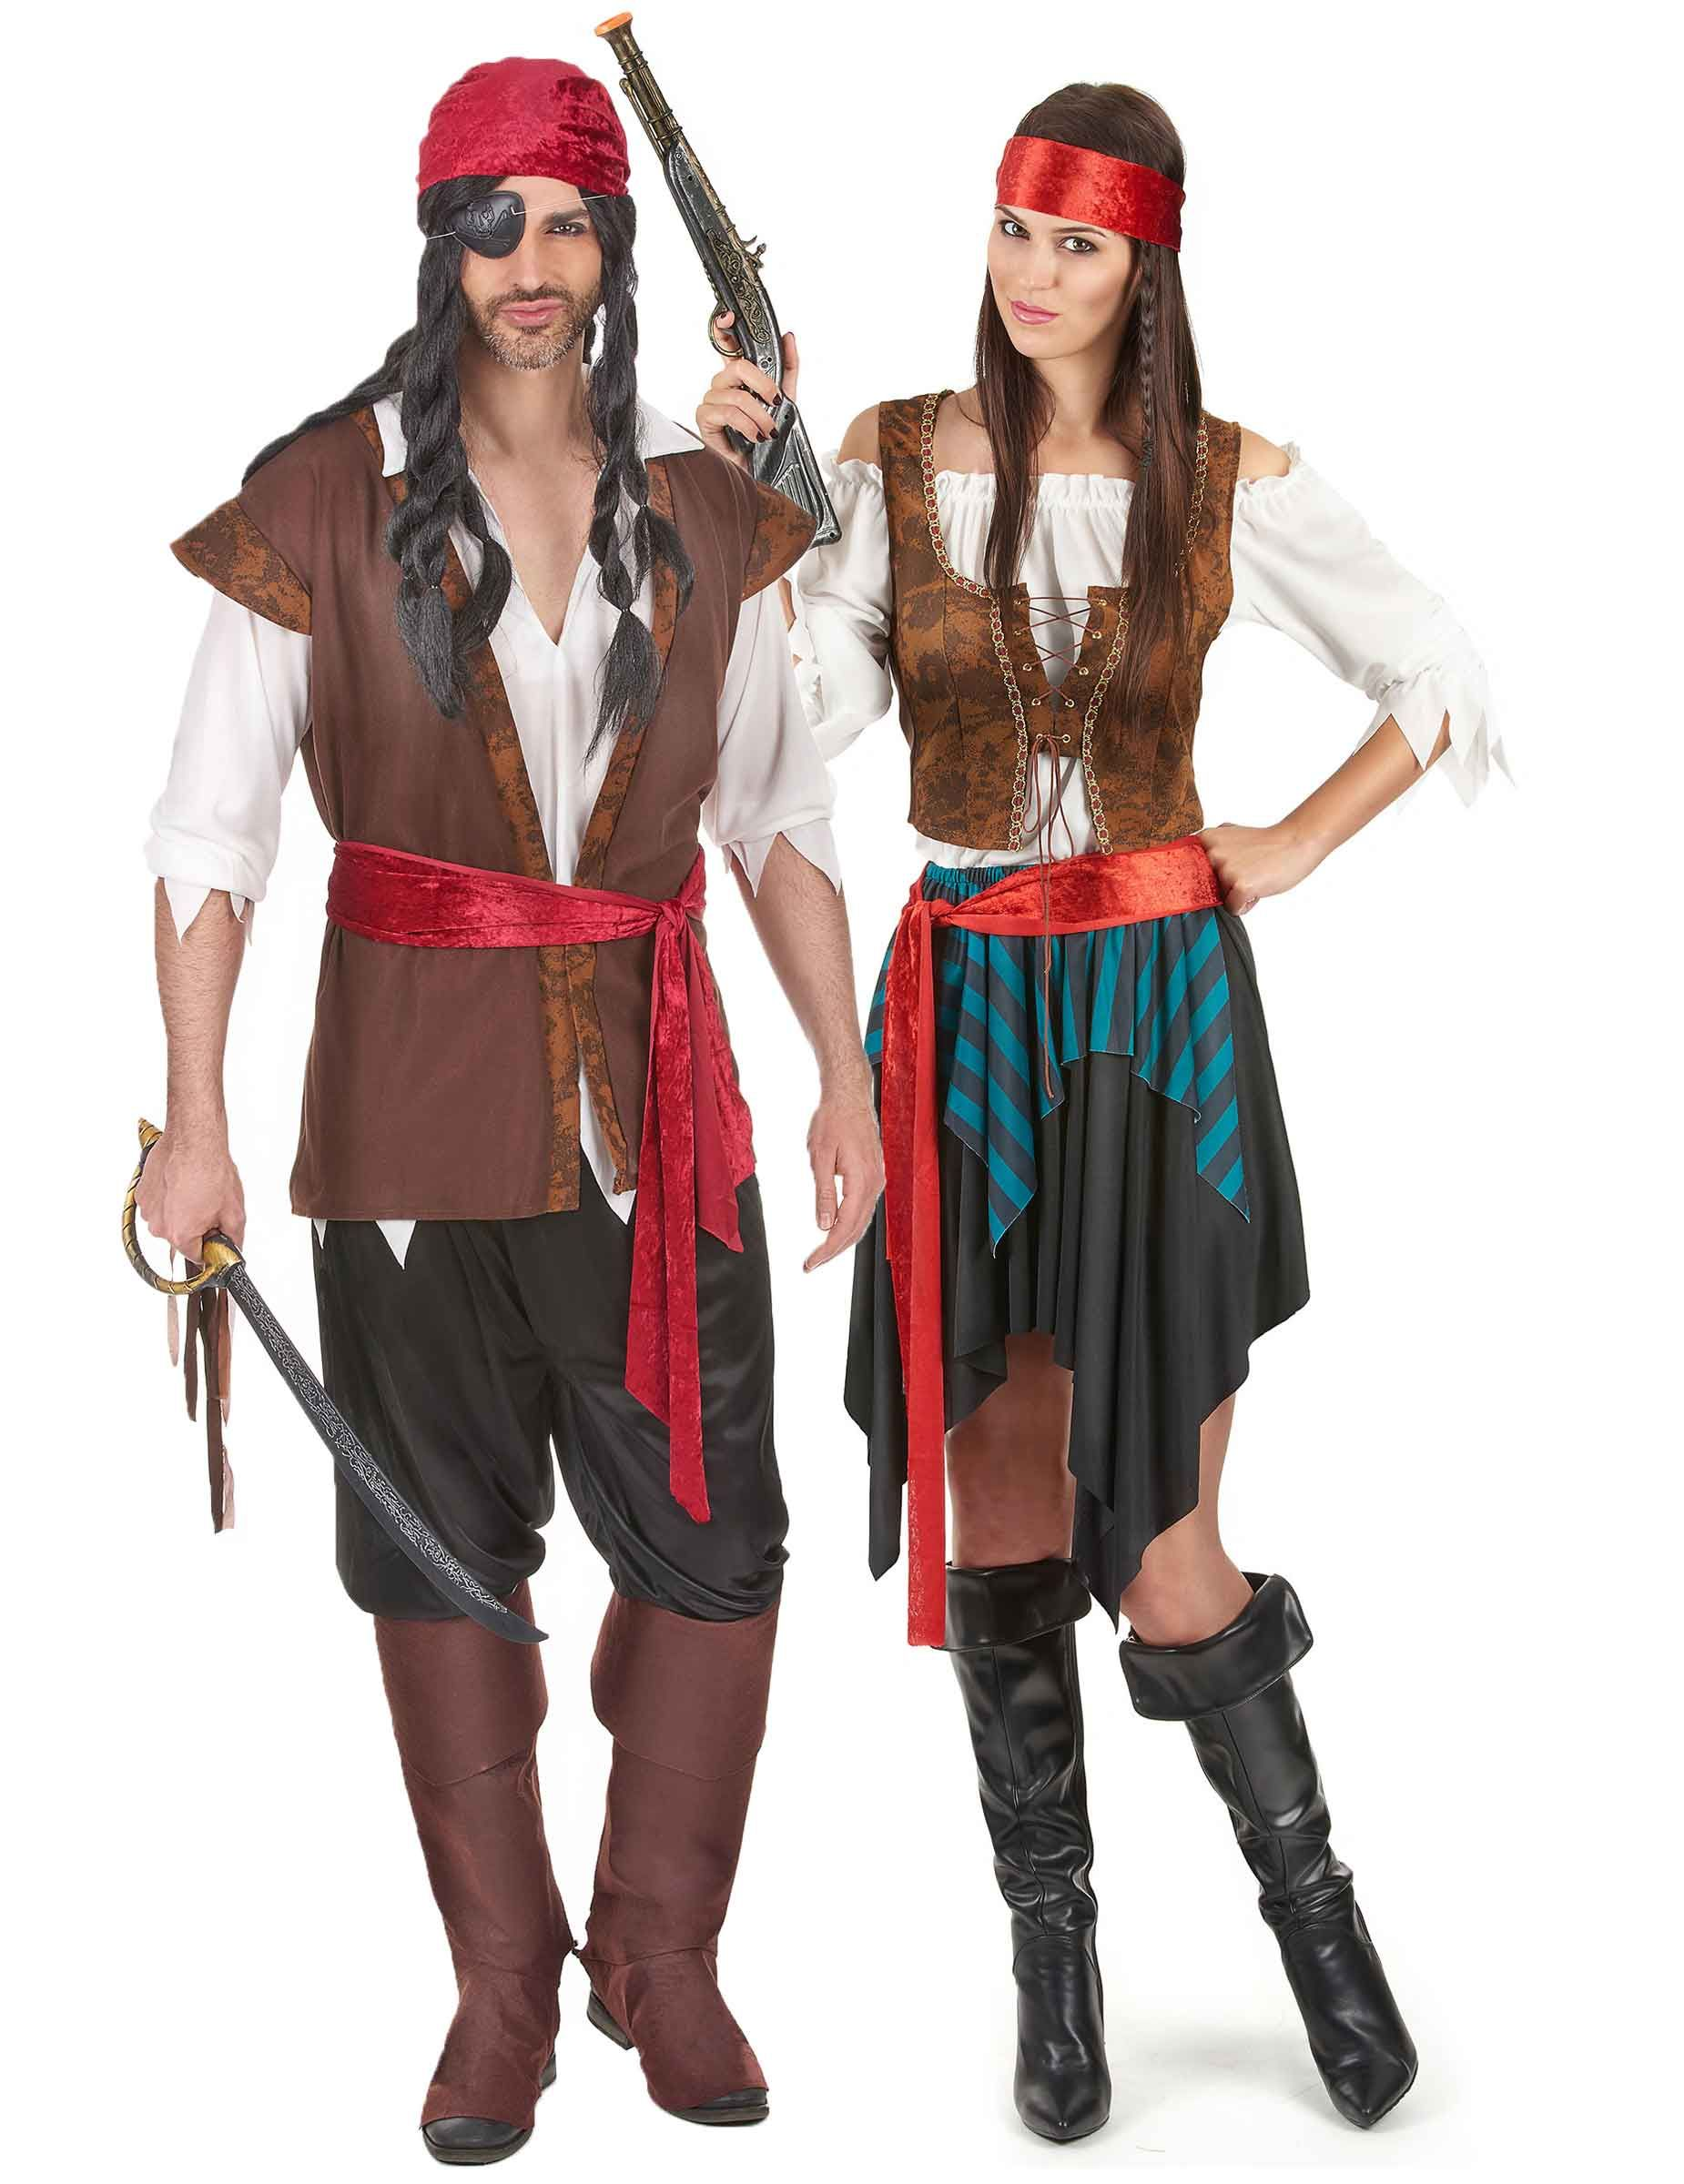 d guisement couple pirate luxe halloween unique costumes costumes et halloween. Black Bedroom Furniture Sets. Home Design Ideas